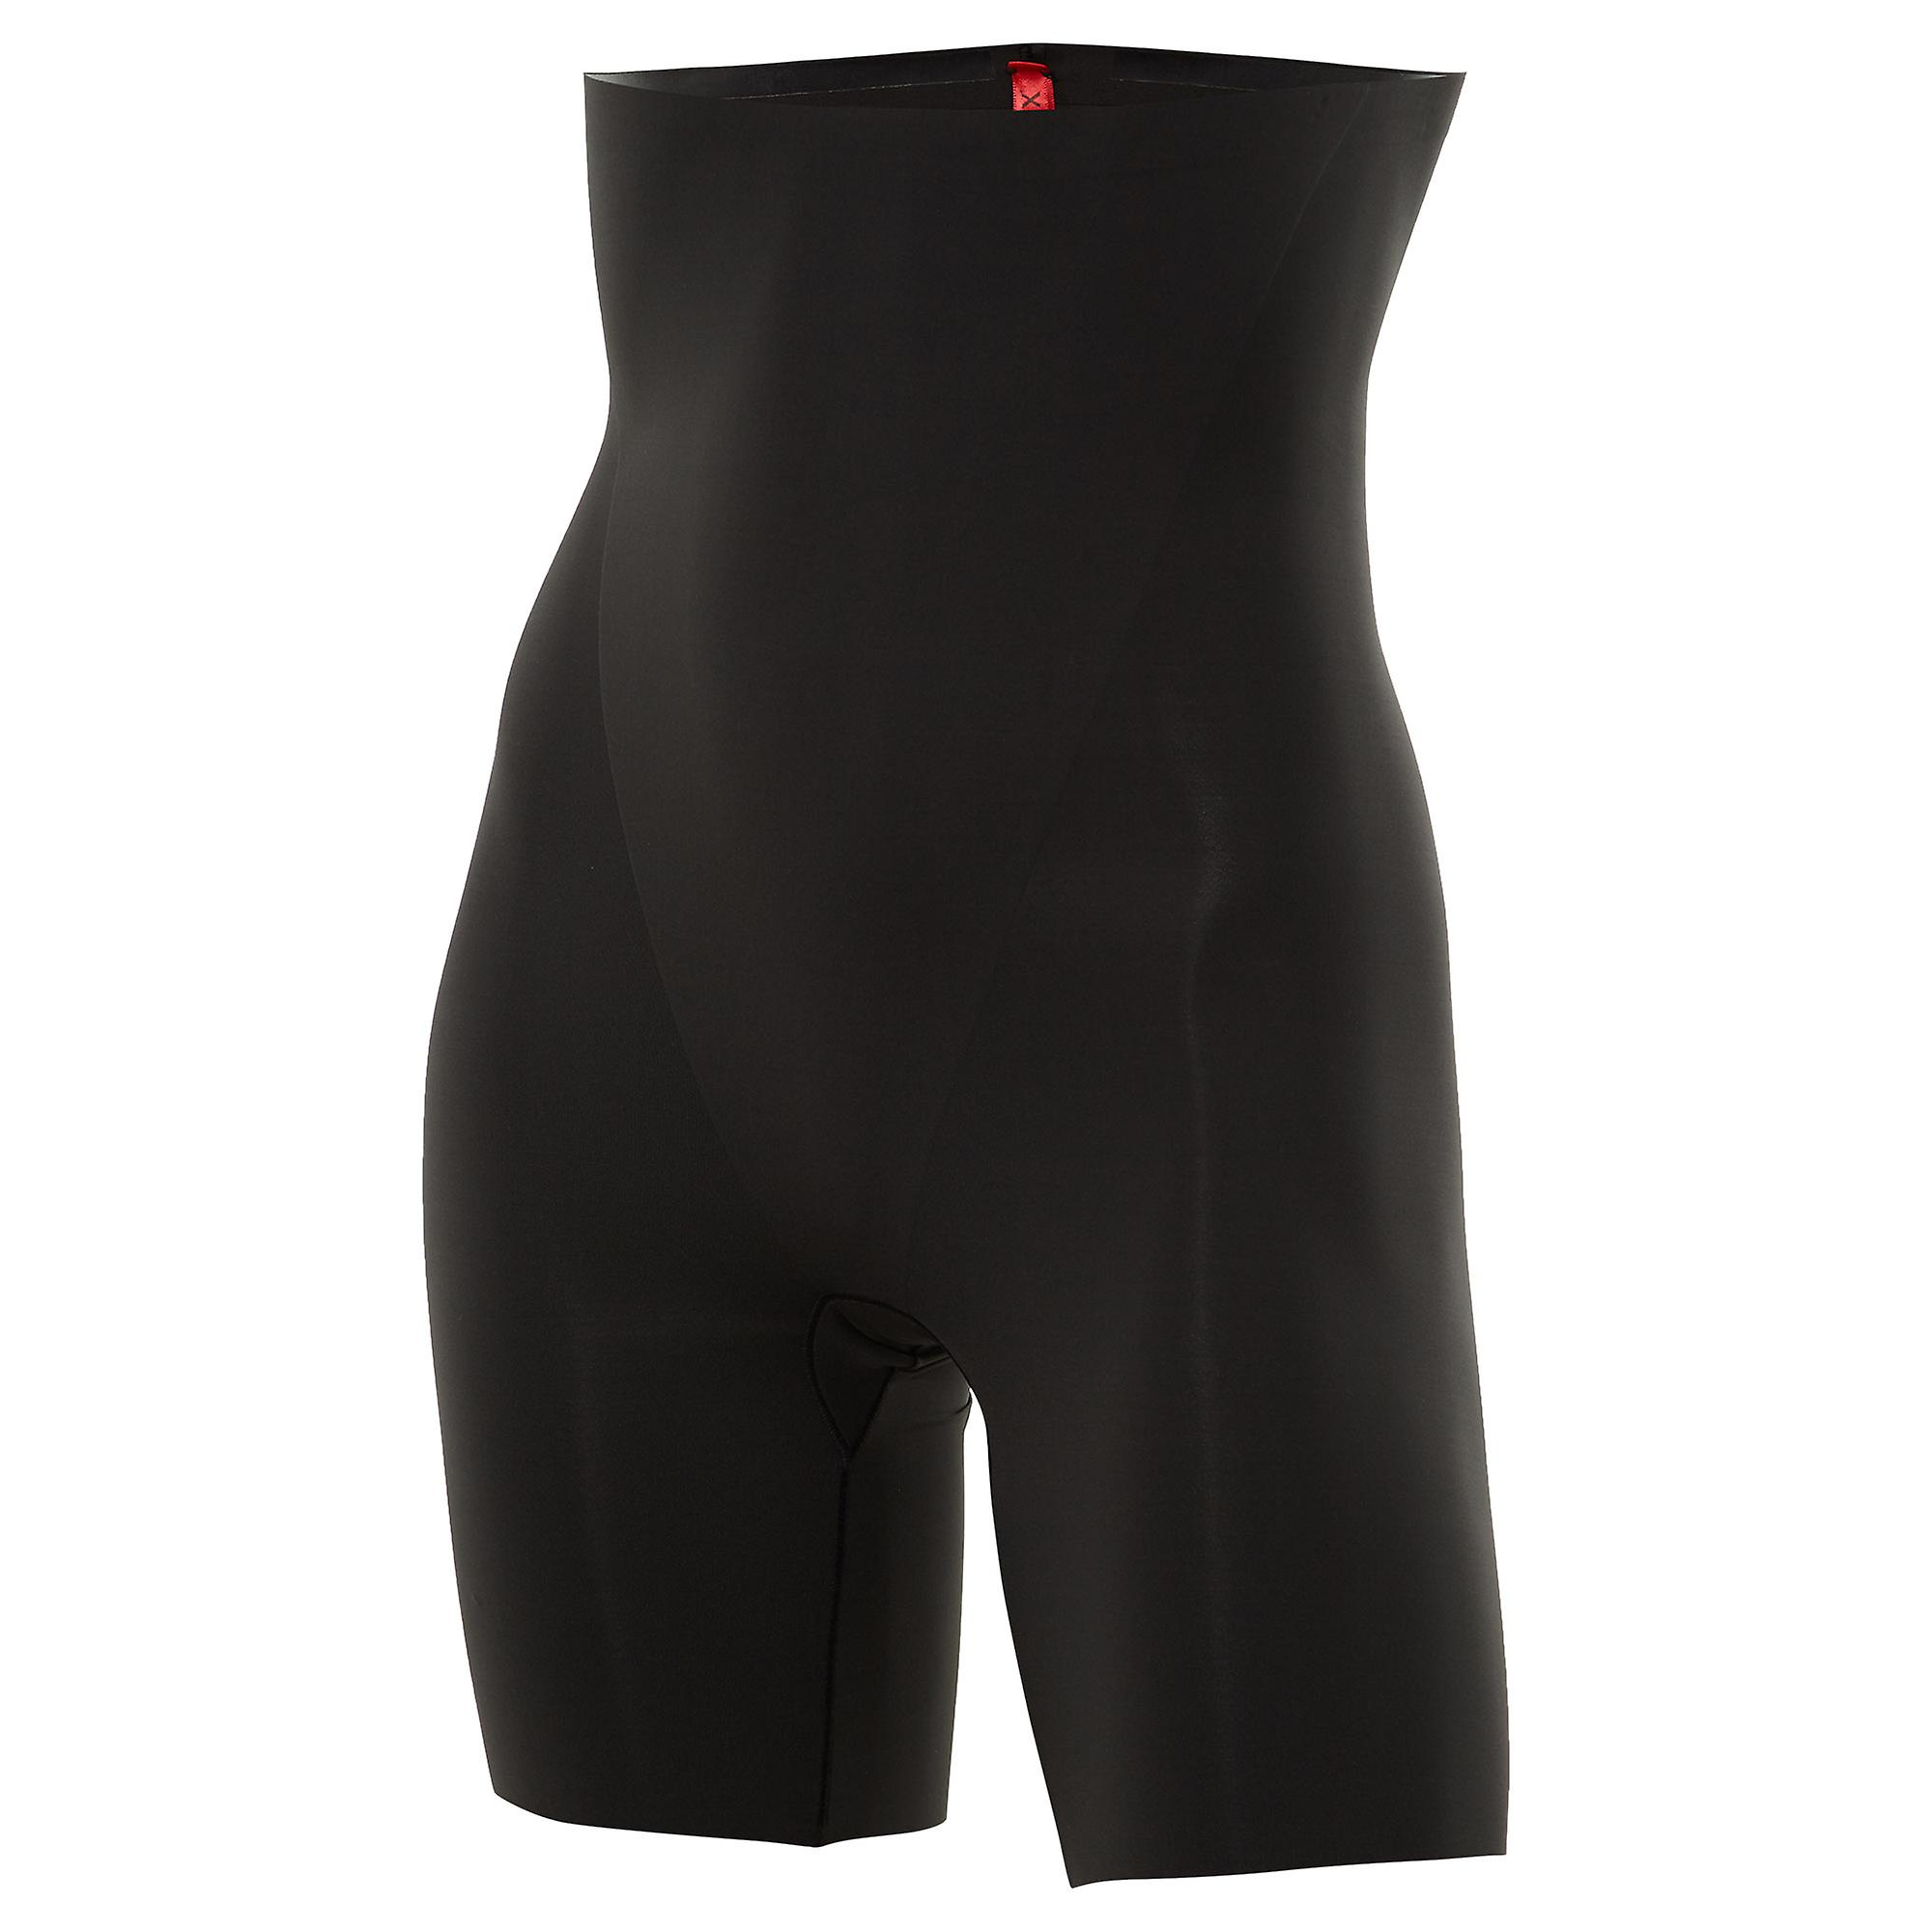 Spanx High-waisted Mid-thigh Style # 2123